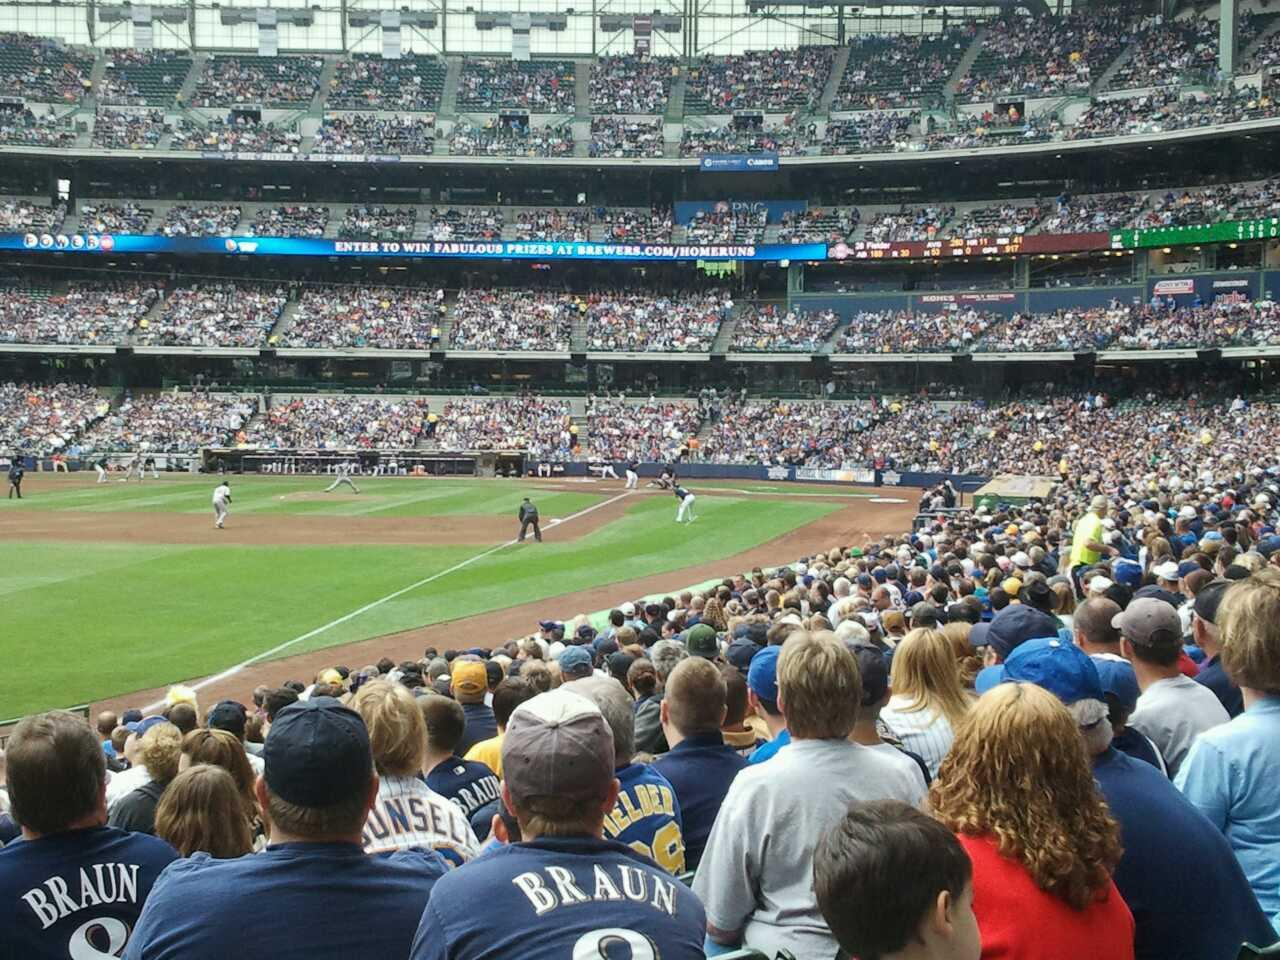 Miller Park Section 130 Row 20 Seat 1